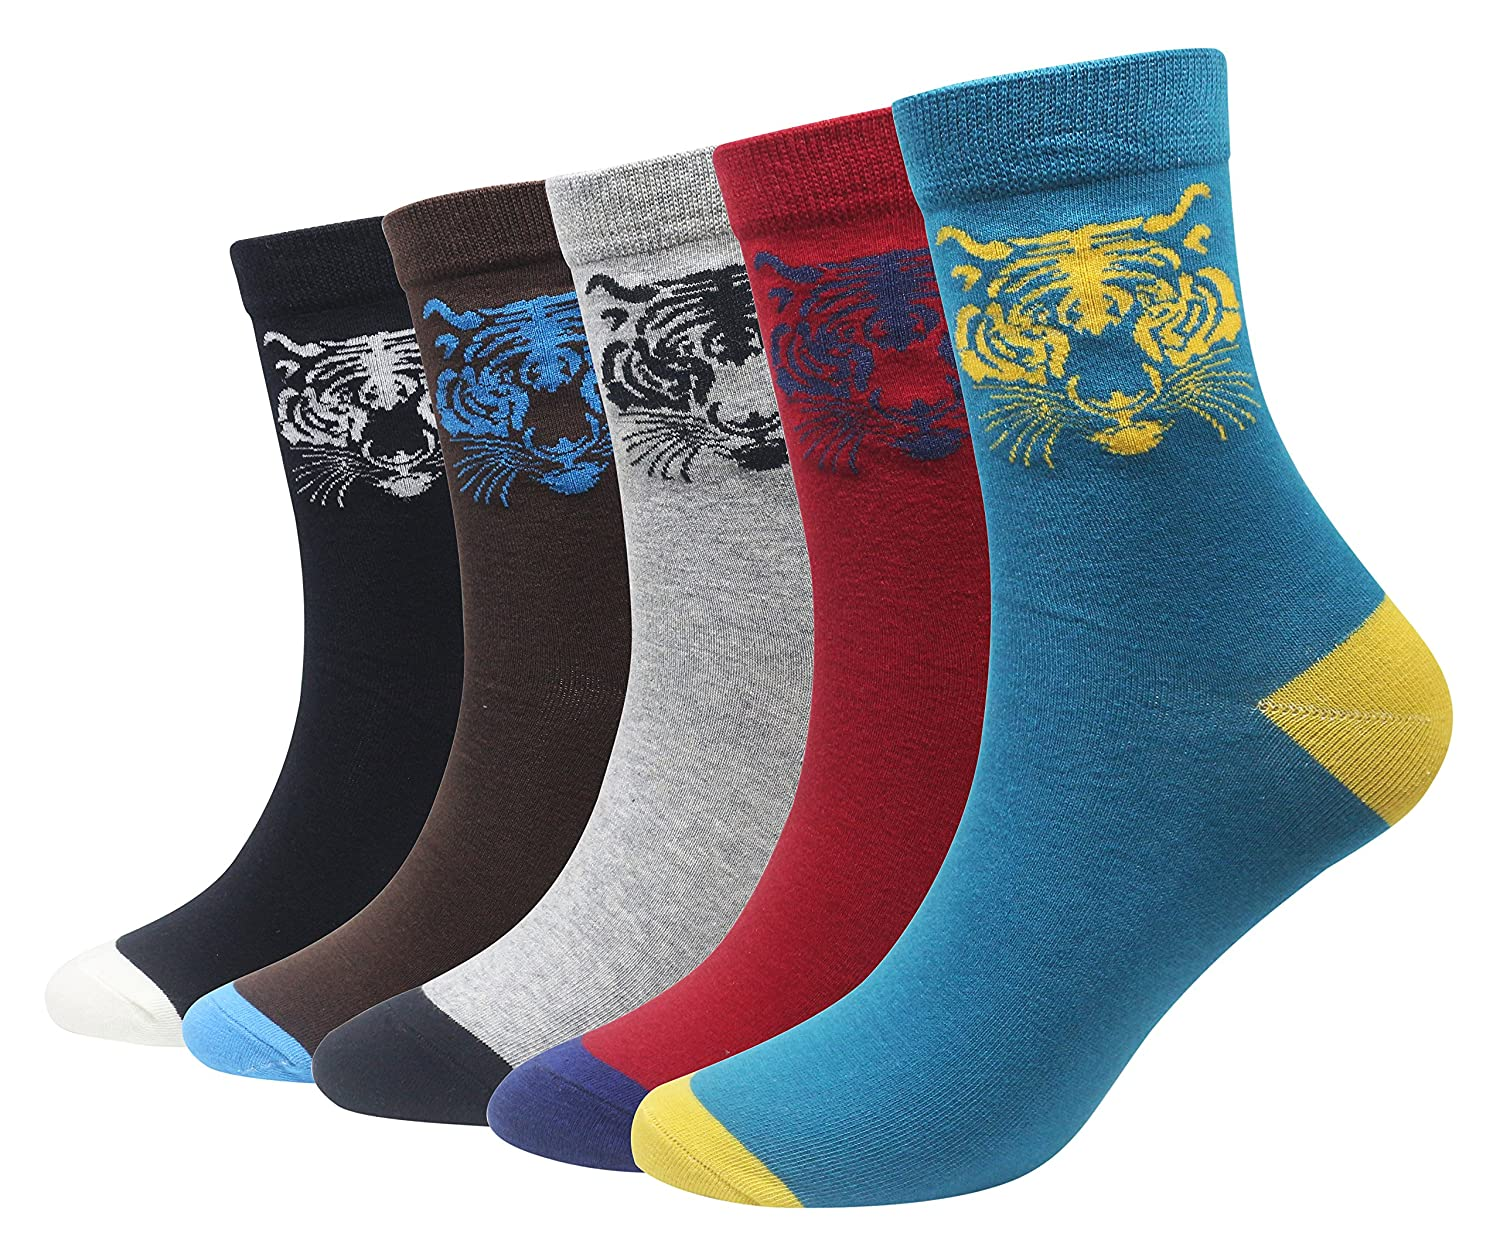 Wish Island Men's 5 Packs Fun Crazy Animal Cotton Casual Crew Socks R2-UPL2-QQ6W